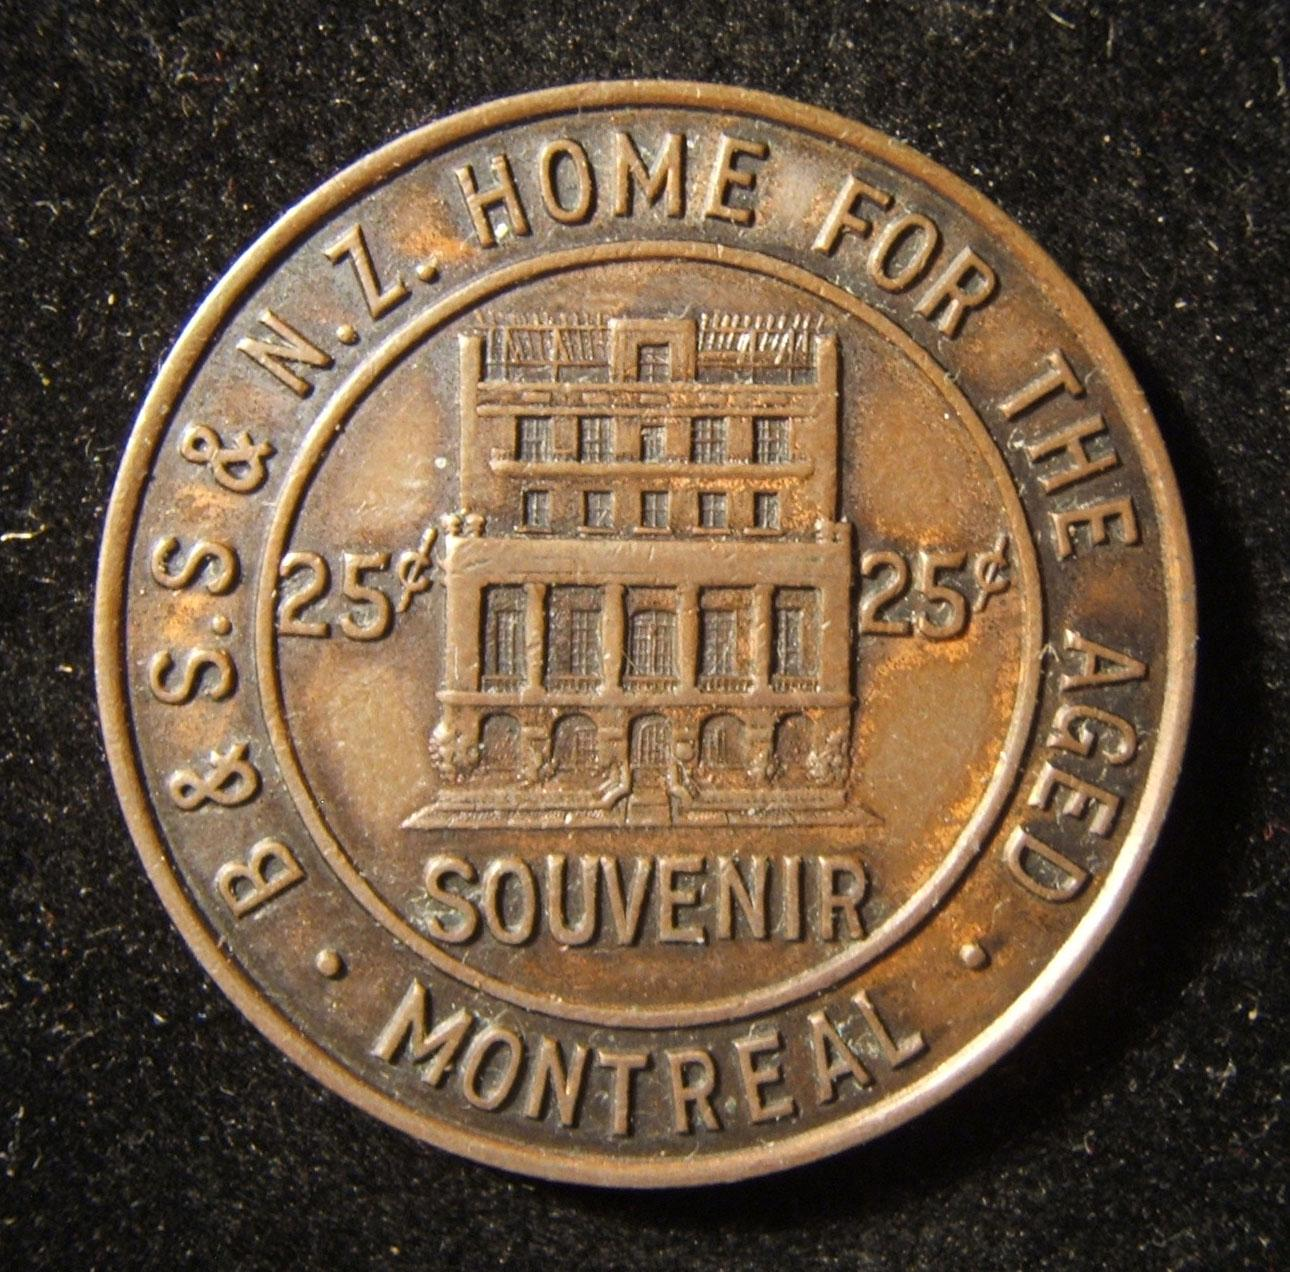 Canadian 25c donation Judaica token of Montreal Jewish Home For the Aged, c.1927